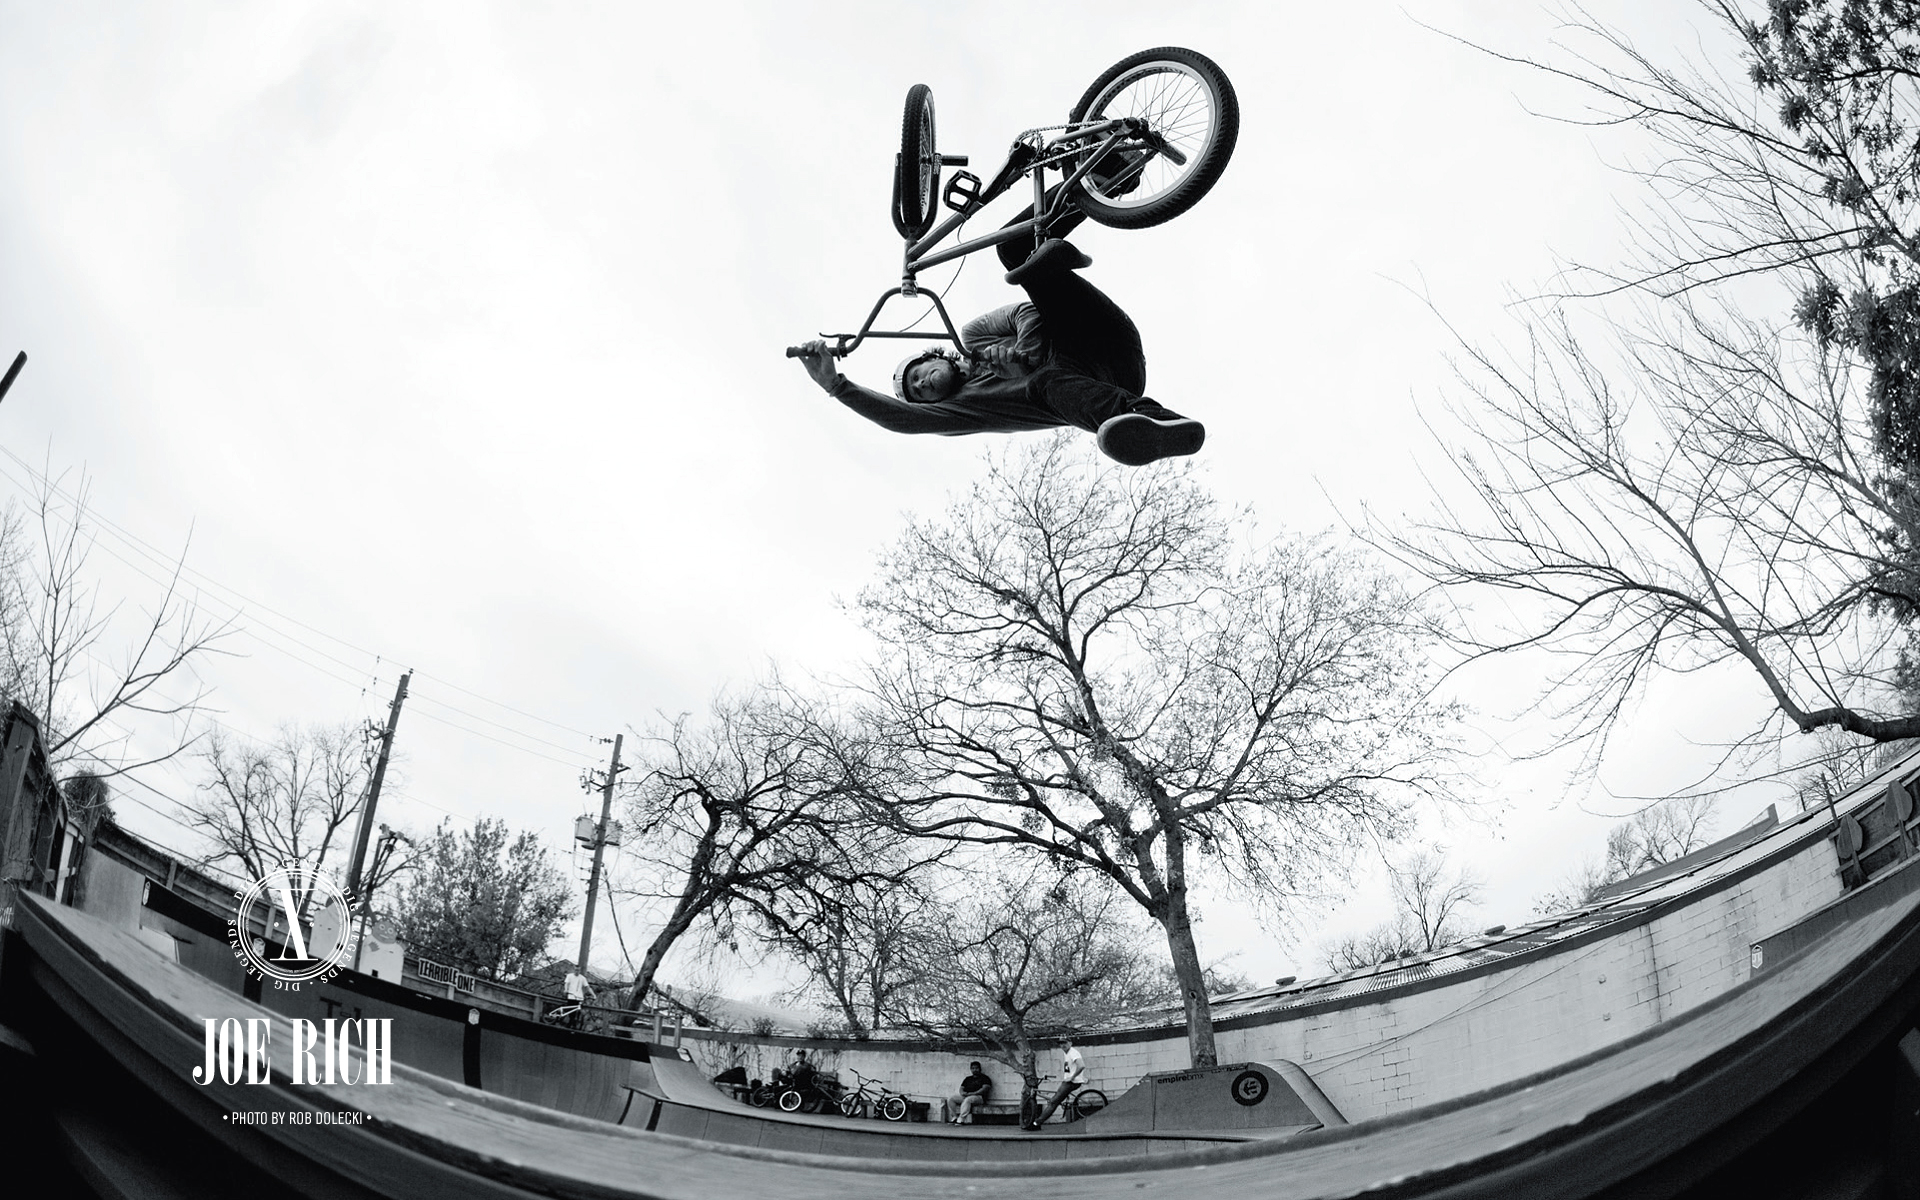 Joe Rich BMX Wallpapers Pictures Photos Images. «